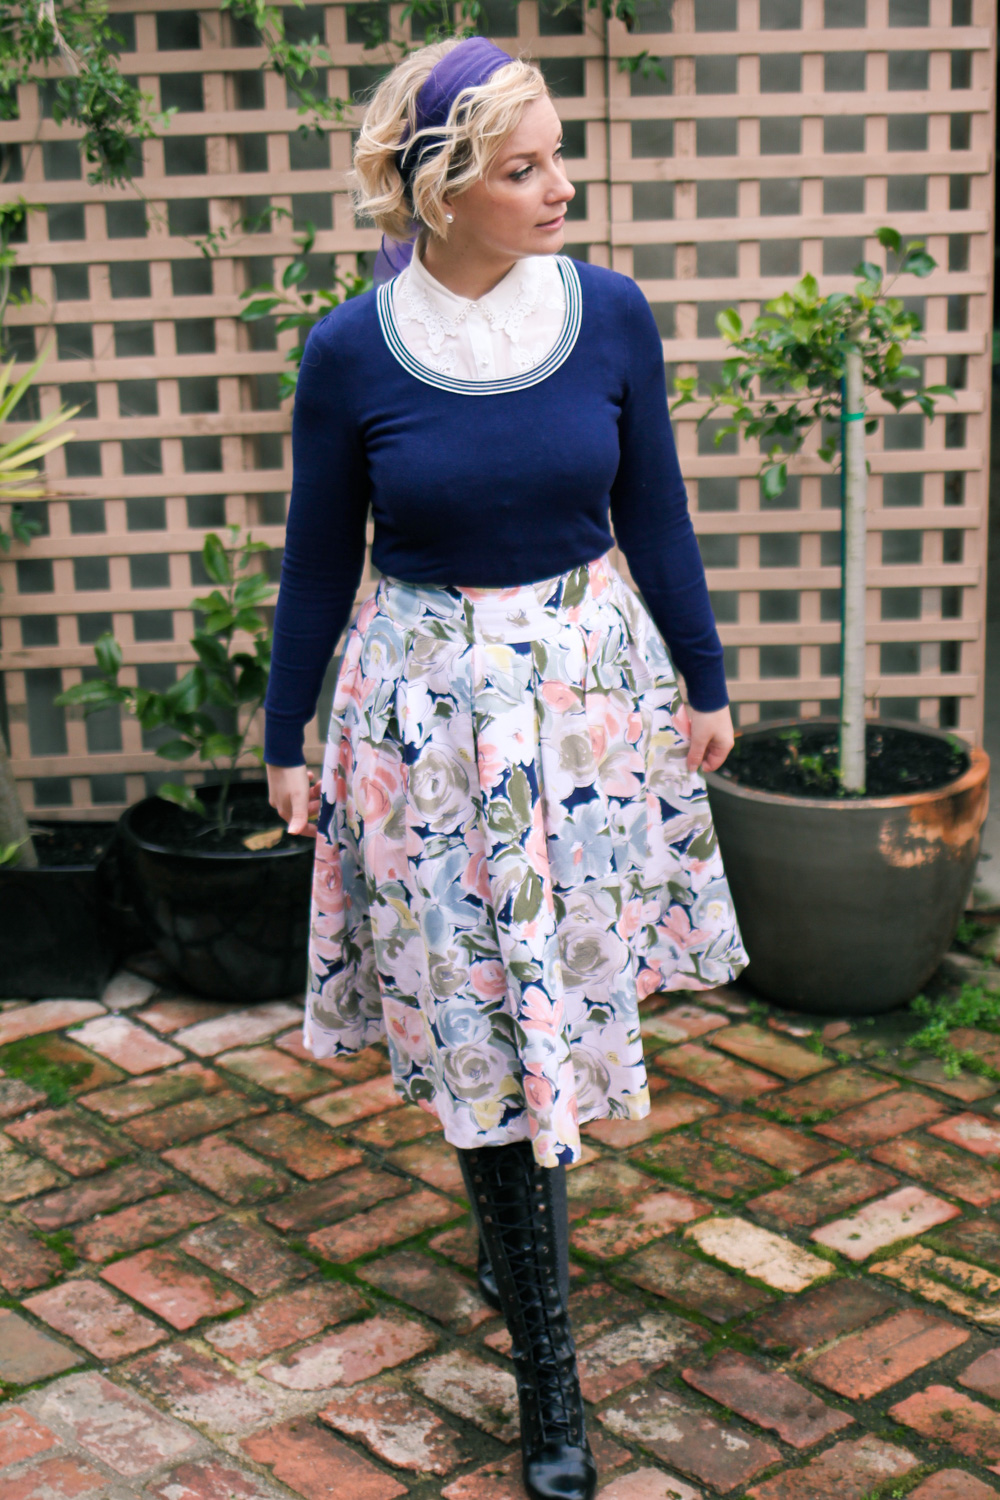 @findingfemme wears winter styled Modcloth lace collar blouse, navy jumper and floral skirt by Review Australia.